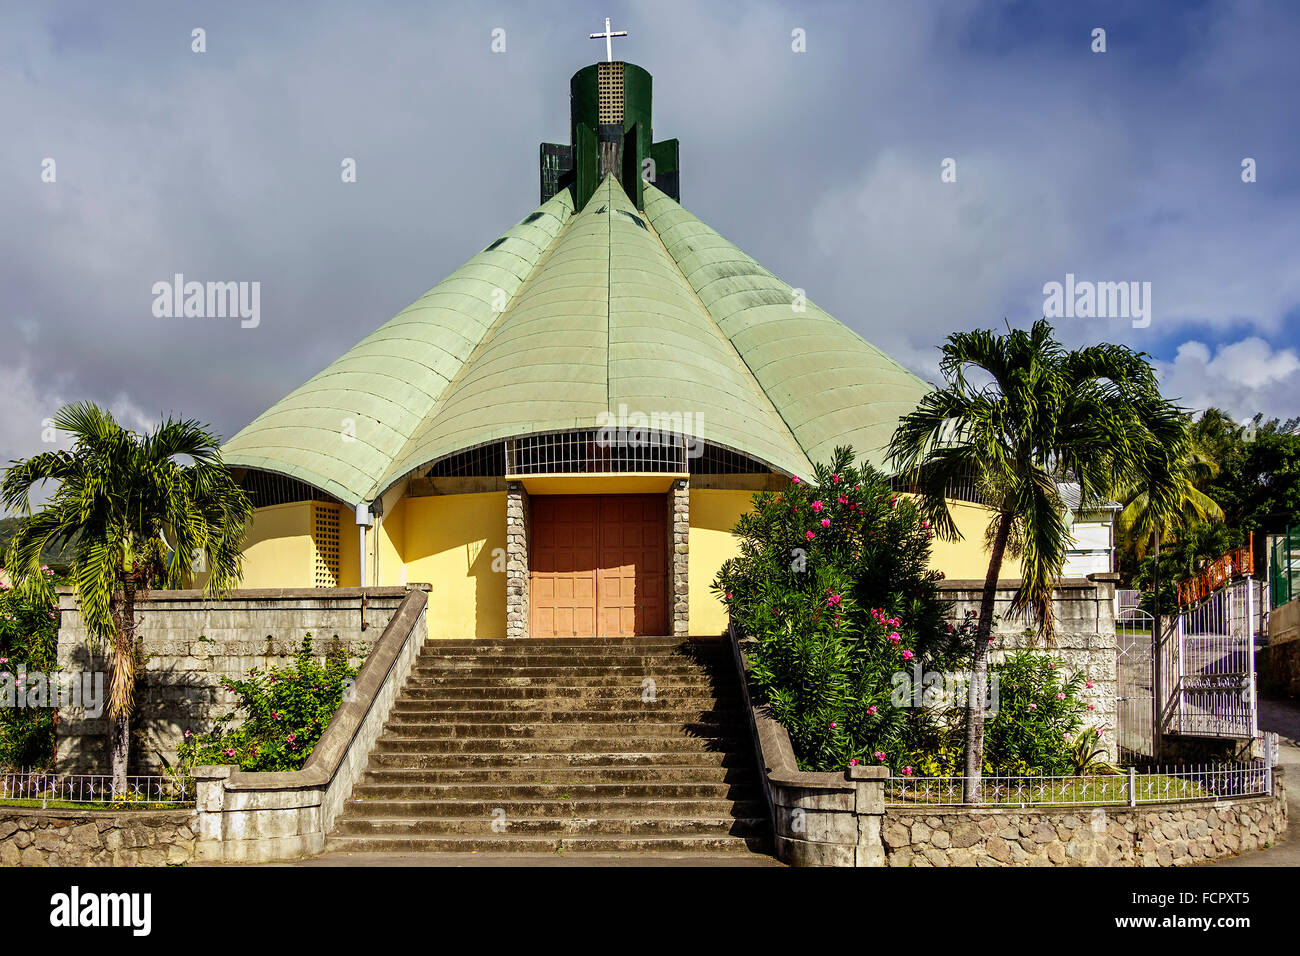 Pottersville Goodwill Church Roseau Dominica West Indies - Stock Image